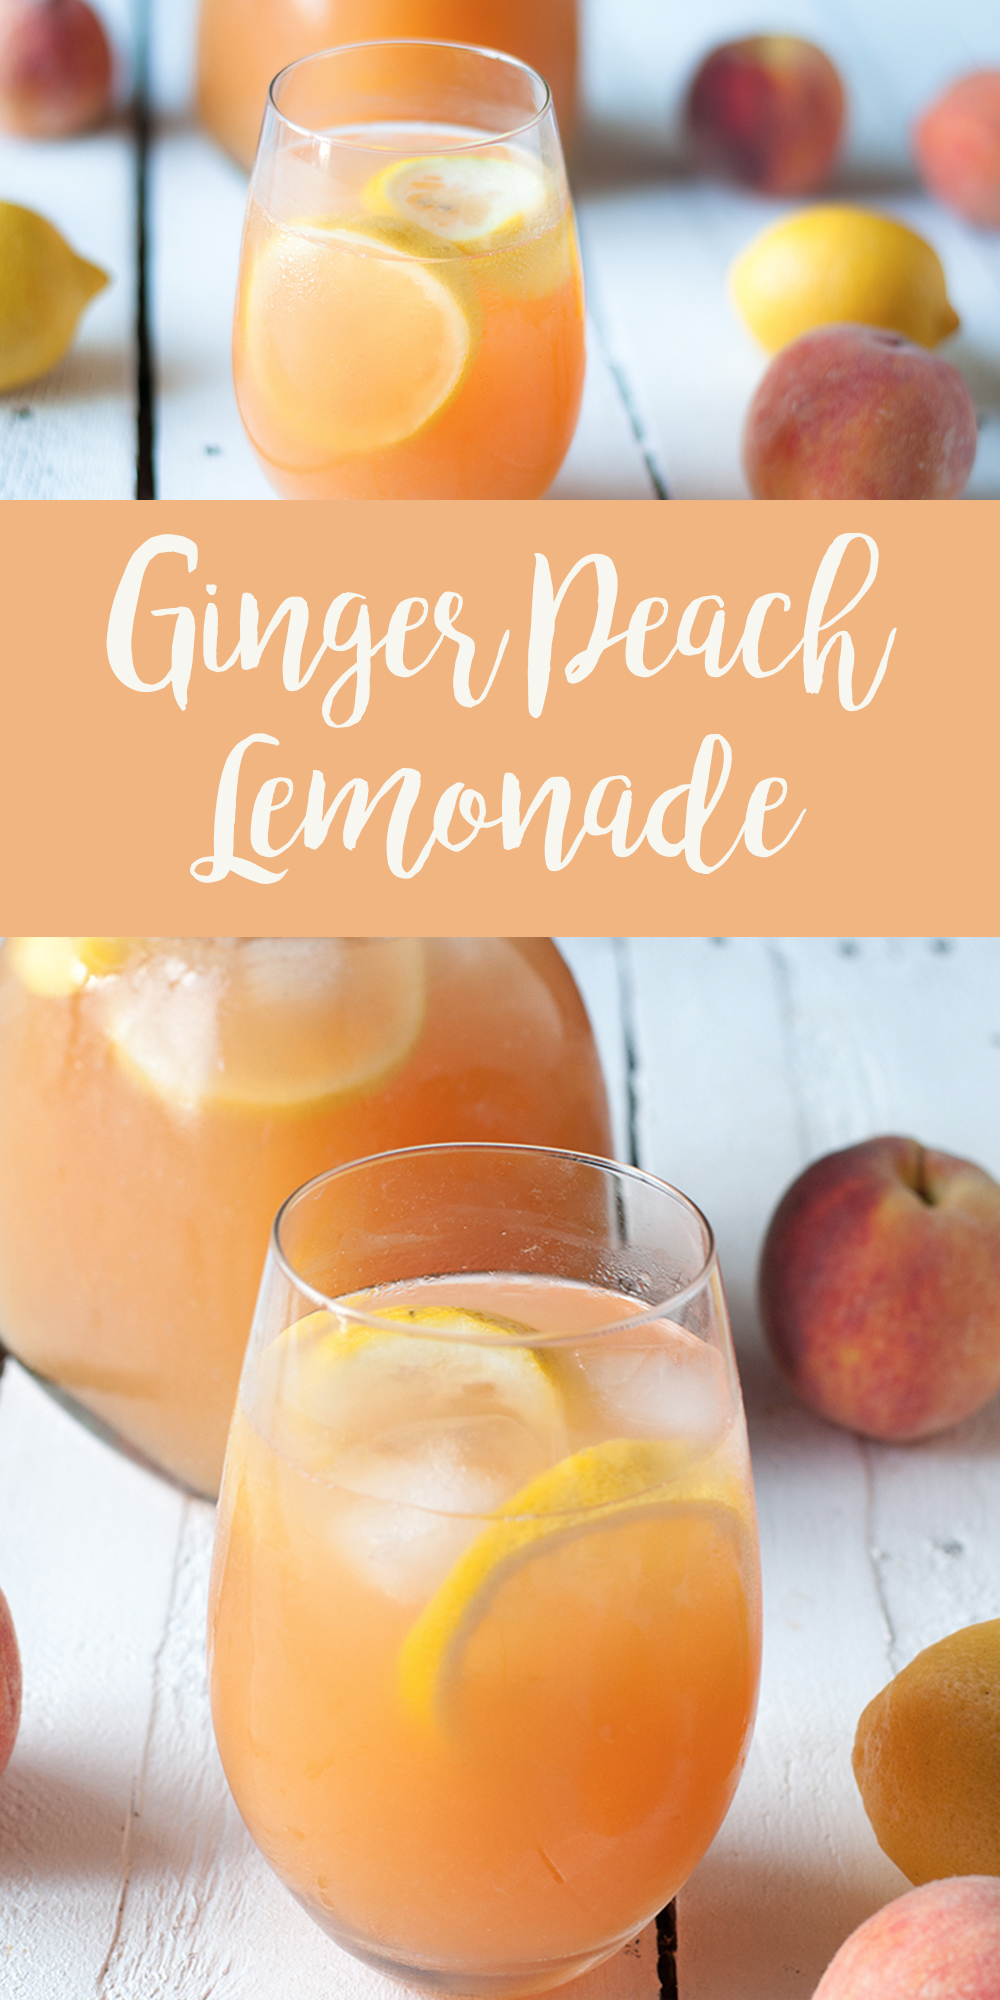 Enjoy a glass of this refreshing Ginger Peach Lemonade on a hot summer day!  #Peach #Recipe #Drink #Beverage #Ginger #vegan #plantbased #summer  #laborday #lemon